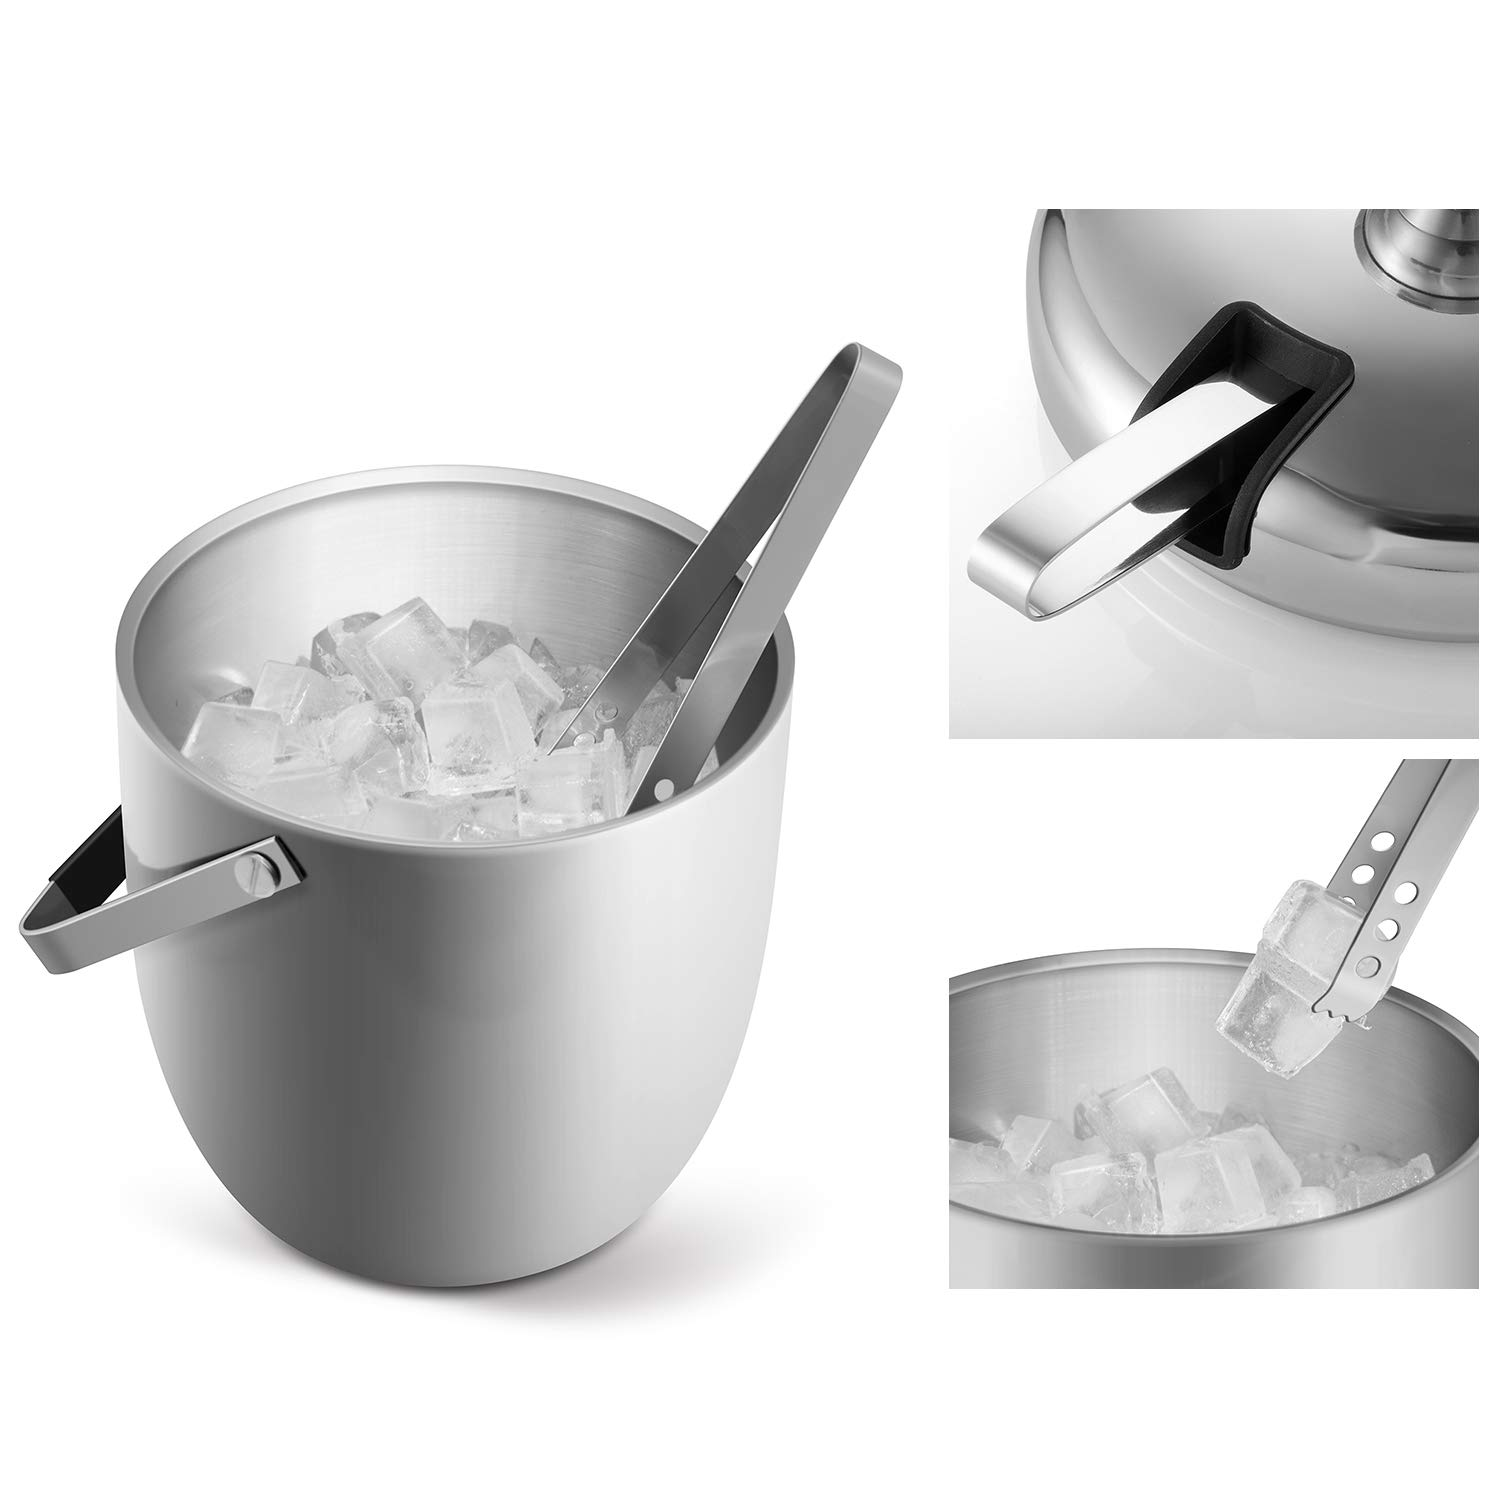 Lid Fortune Candy Insulated Ice Bucket Double Walled Stainless Steel Ice Bucket with Ice Tongs Scoop and Exclusive Handmade Nylon Holder 2.8 L Silver//Navy Blue